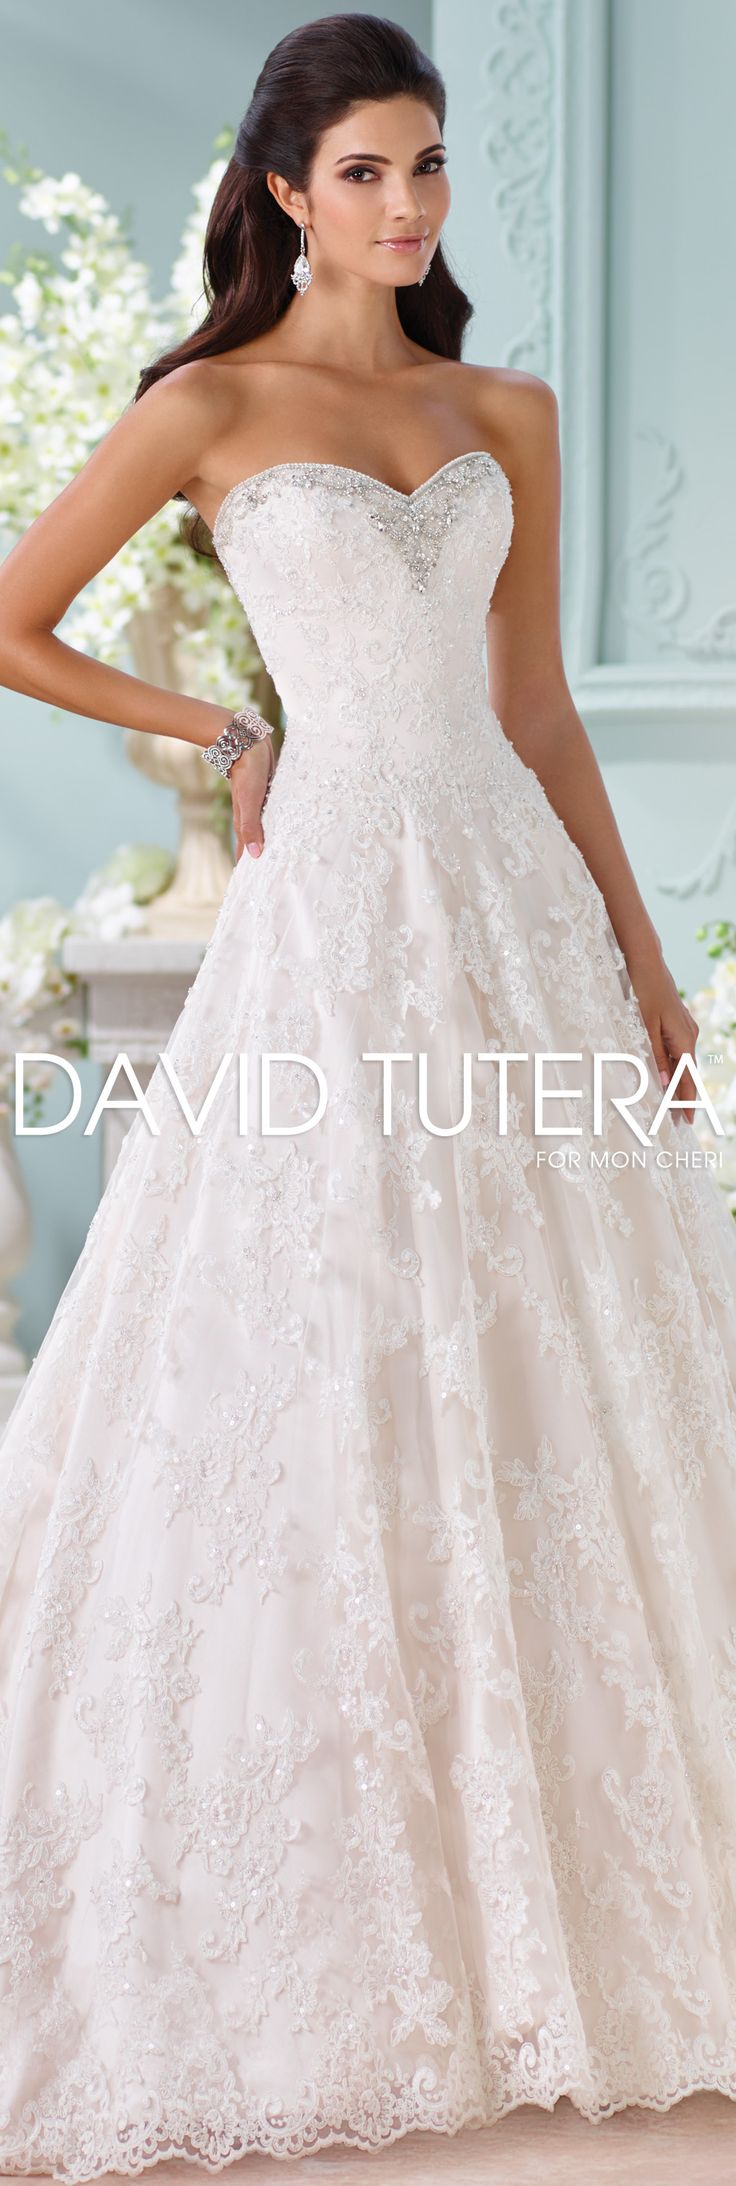 3312 best wedding dresses images on pinterest wedding for David tutera wedding jewelry collection